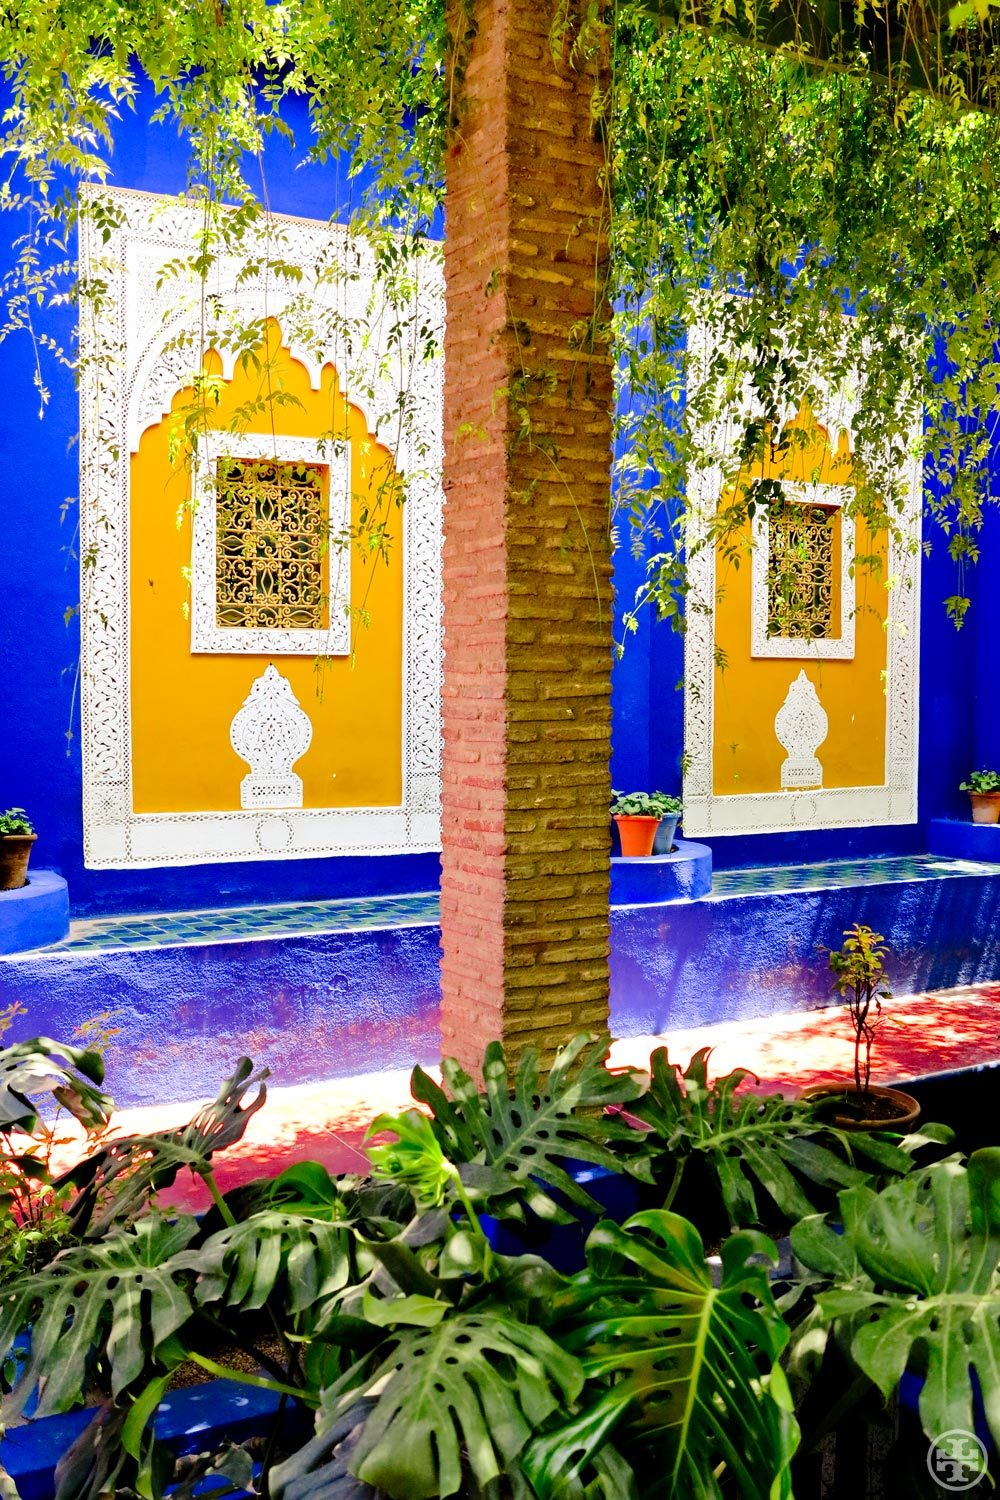 M is for Majorelle Garden  Yves Saint Laurent's bohemian oasis in the middle of Marrakech. That bright blue throughout? It's trademarked after the garden's designer, French artist Jacques Majorelle.